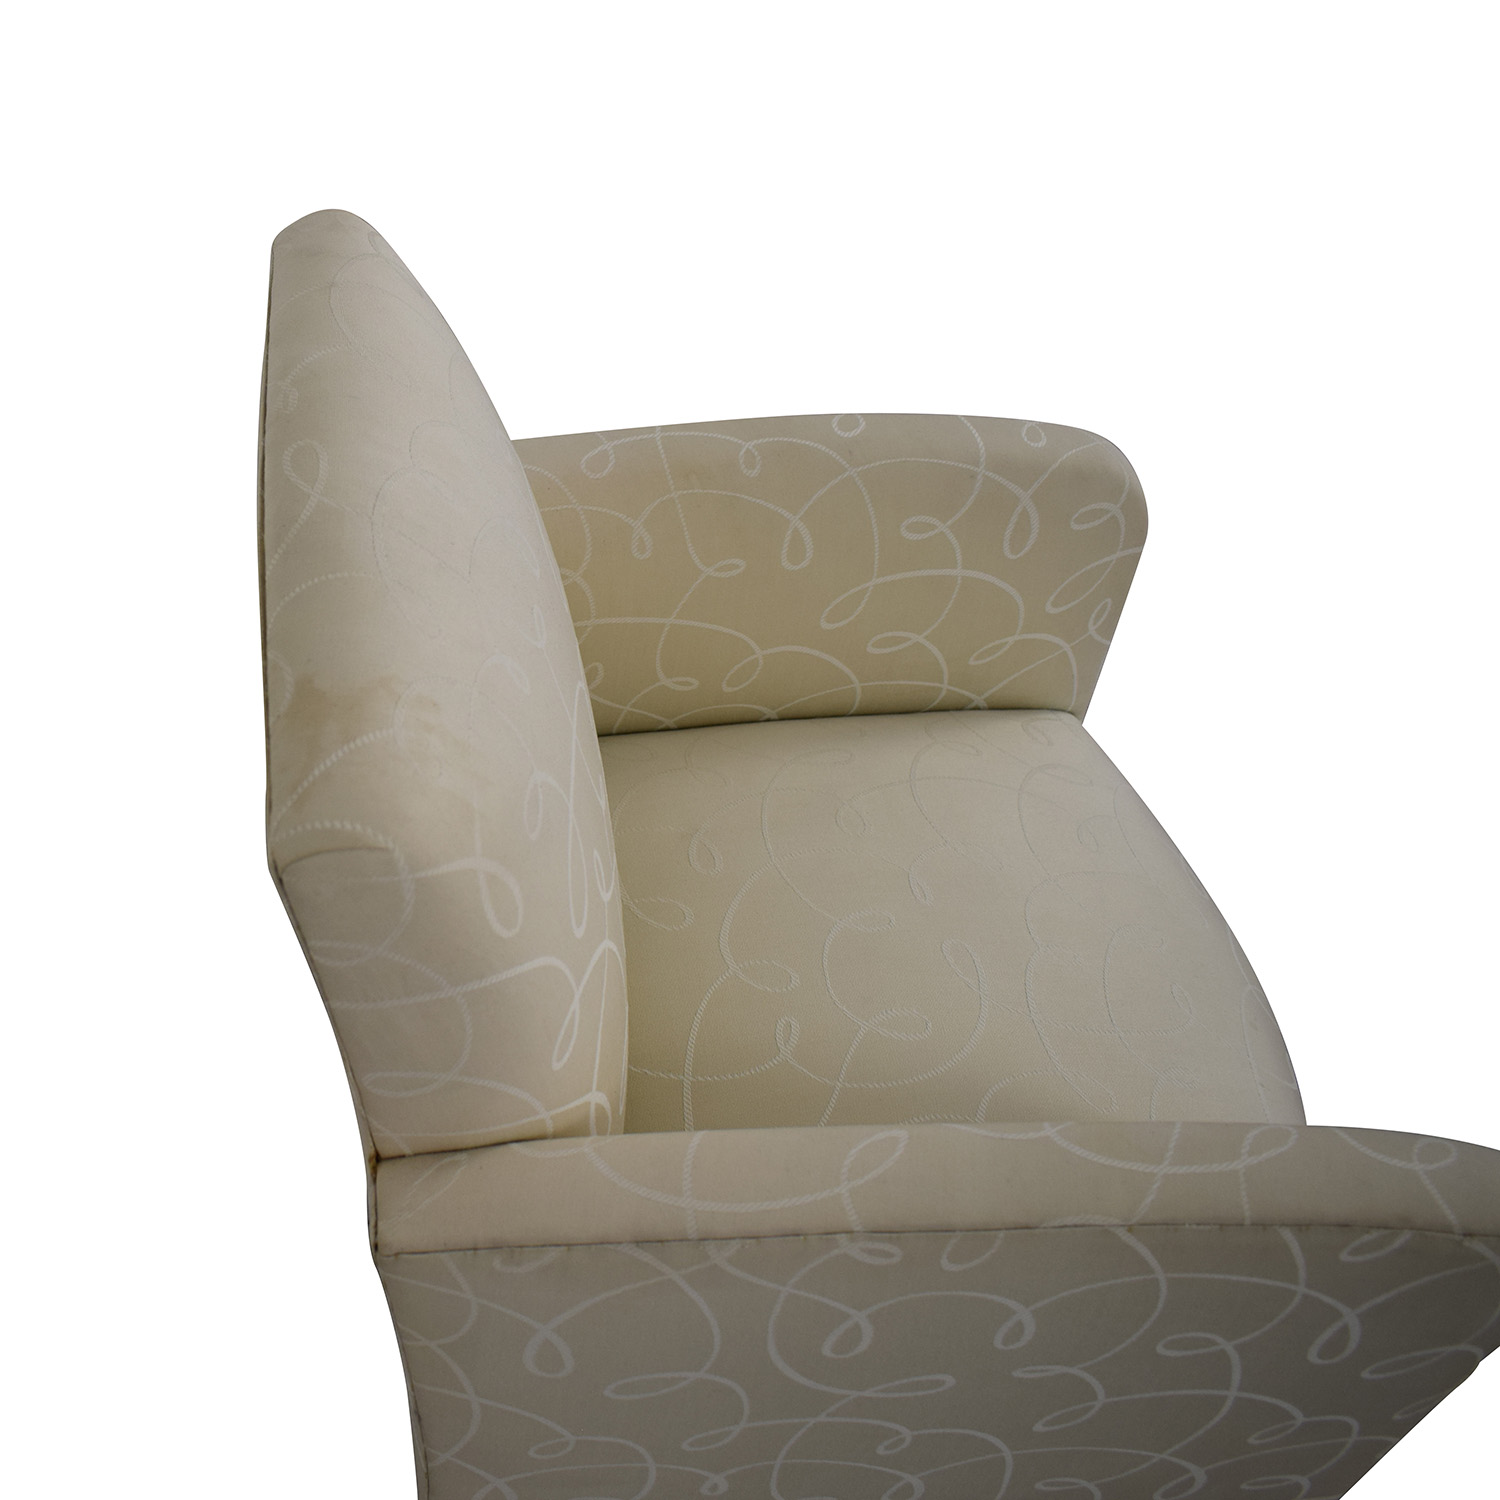 Upholstered Fabric Chair sale